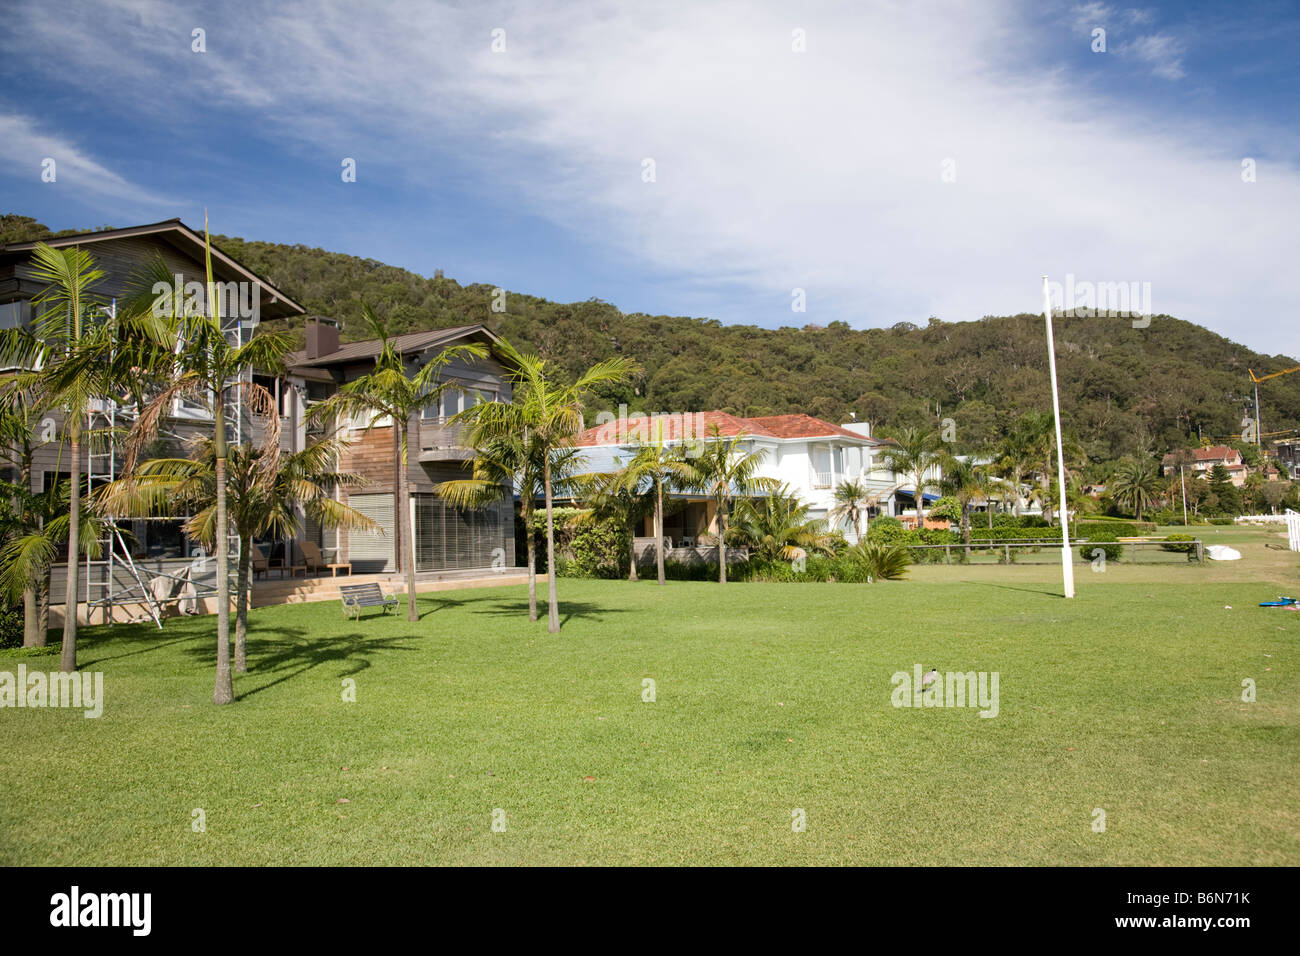 waterfront exclusive detached family property homes,palm beach,sydney,new south wales,australia - Stock Image